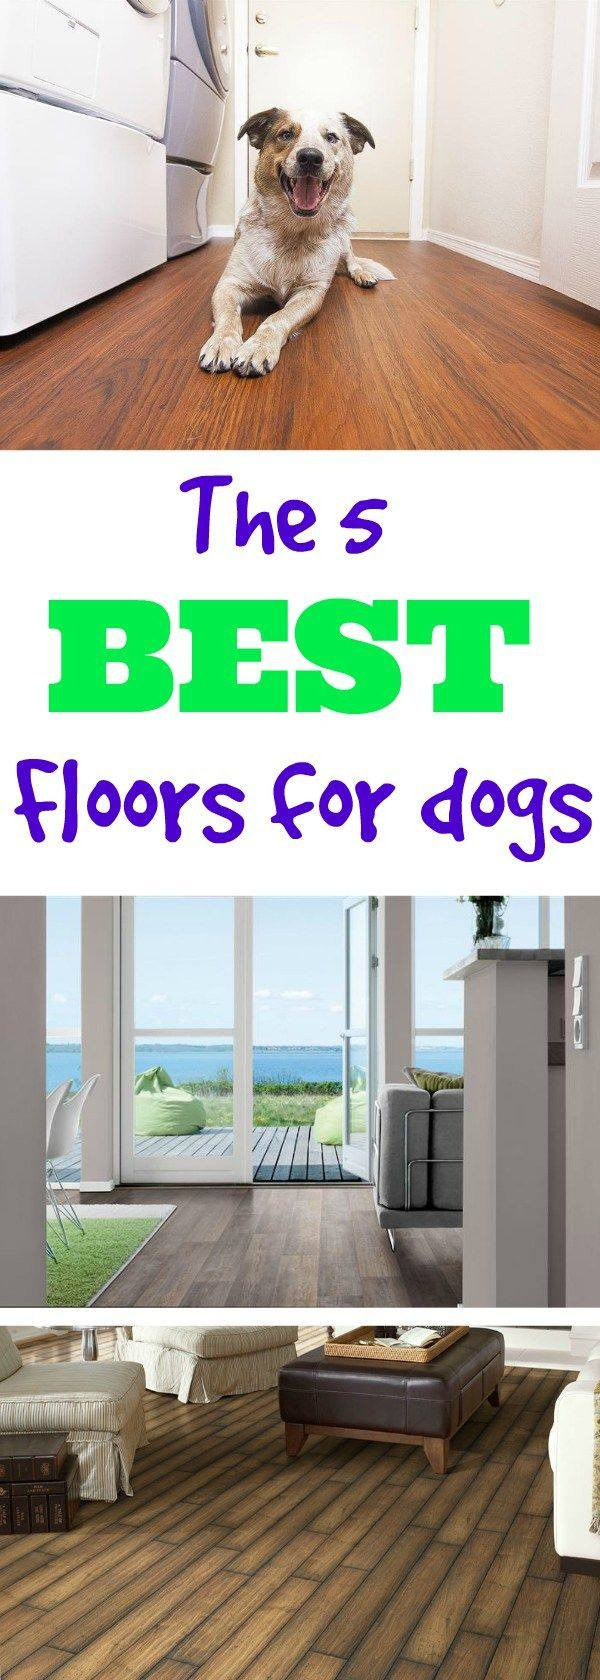 pets and hardwood floors of more what is the most durable flooring for dogs tips best flooring within dog on wooden floor 56a4a1705f9b58b7d0d7e64e of what is the most durable flooring for dogs the most durable flooring you can install